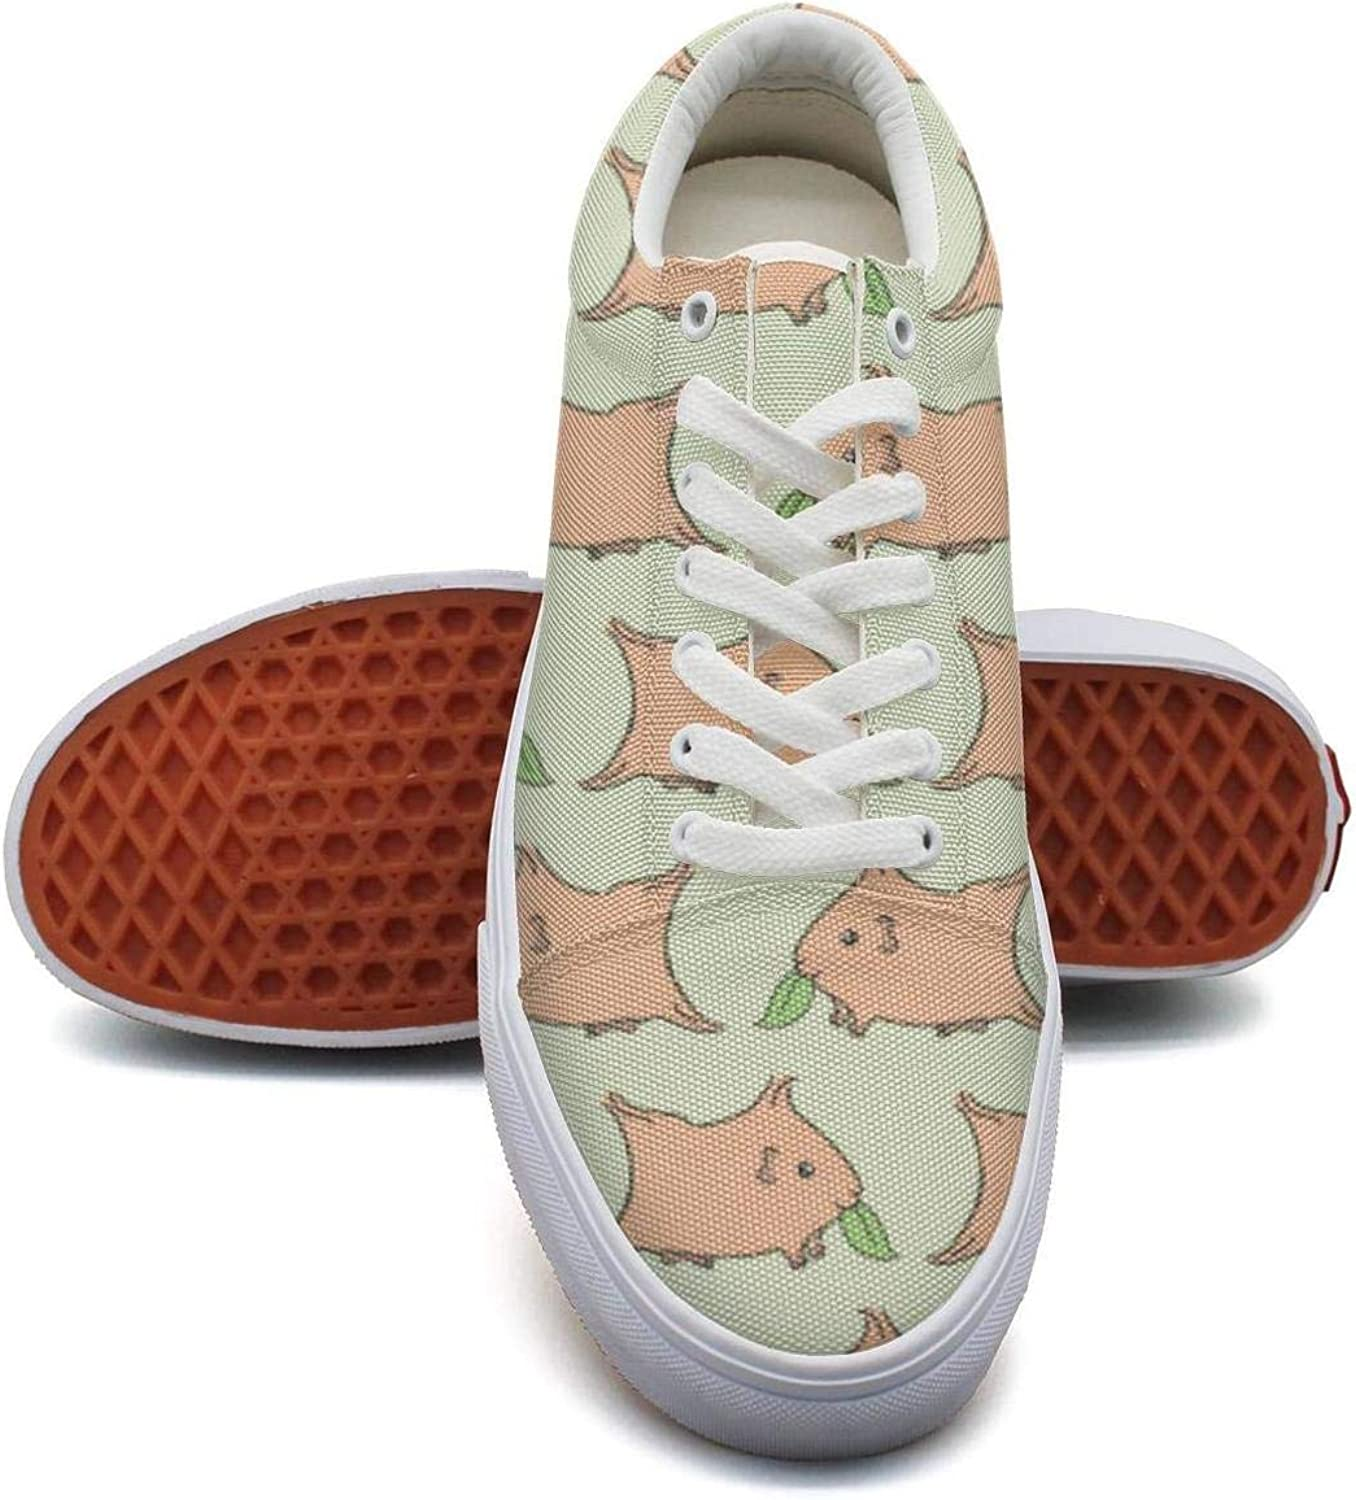 SXGANG Women's Guinea Pig Printed Lace-up Canvas shoes